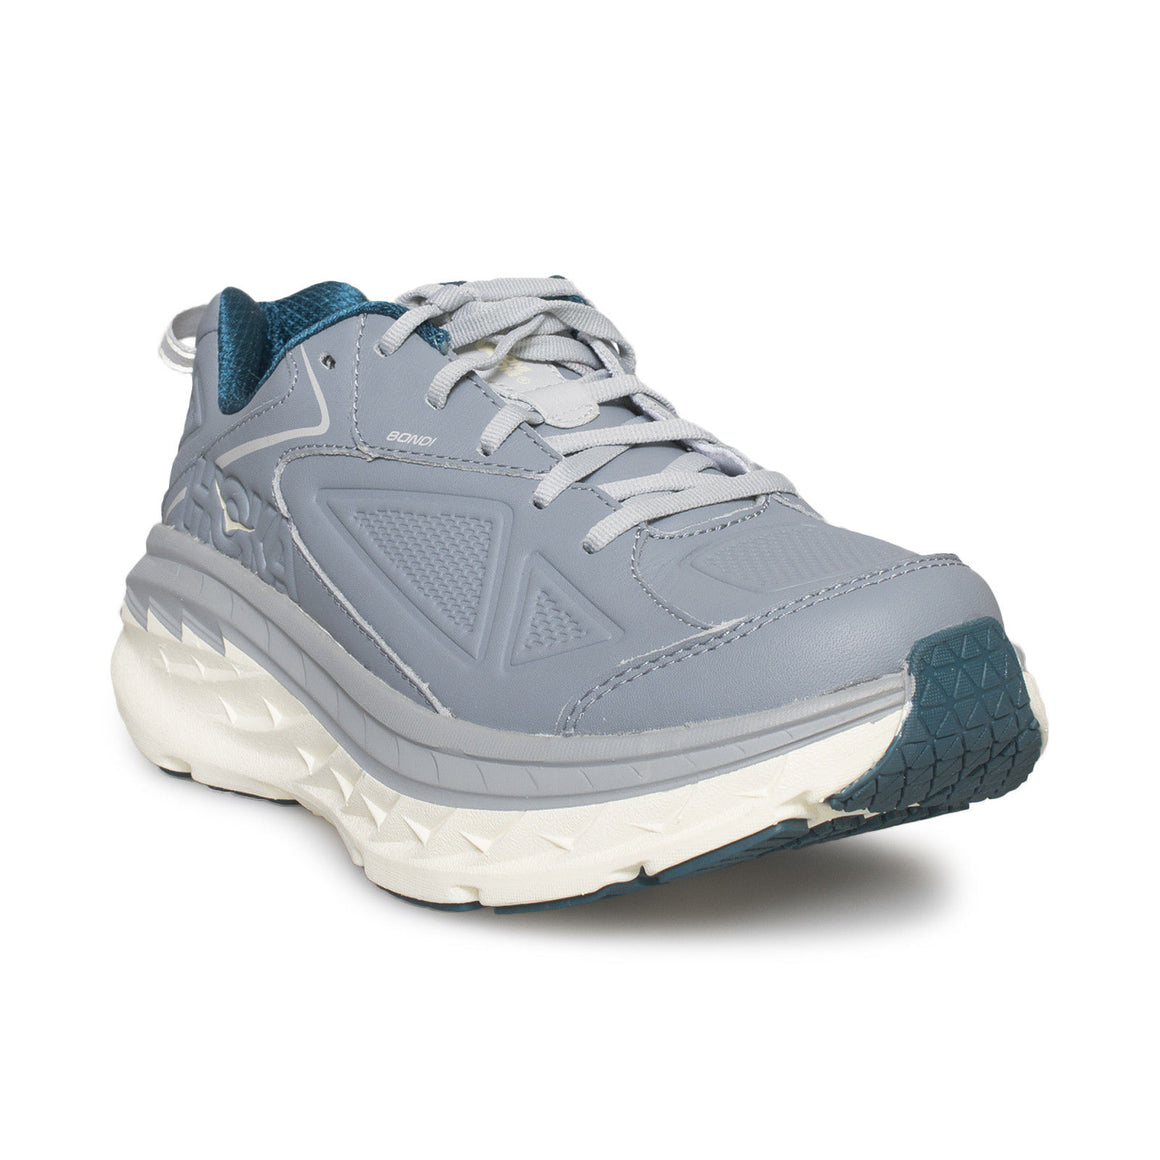 Hoka Bondi LTR Tradewinds Running Shoes - Women`s